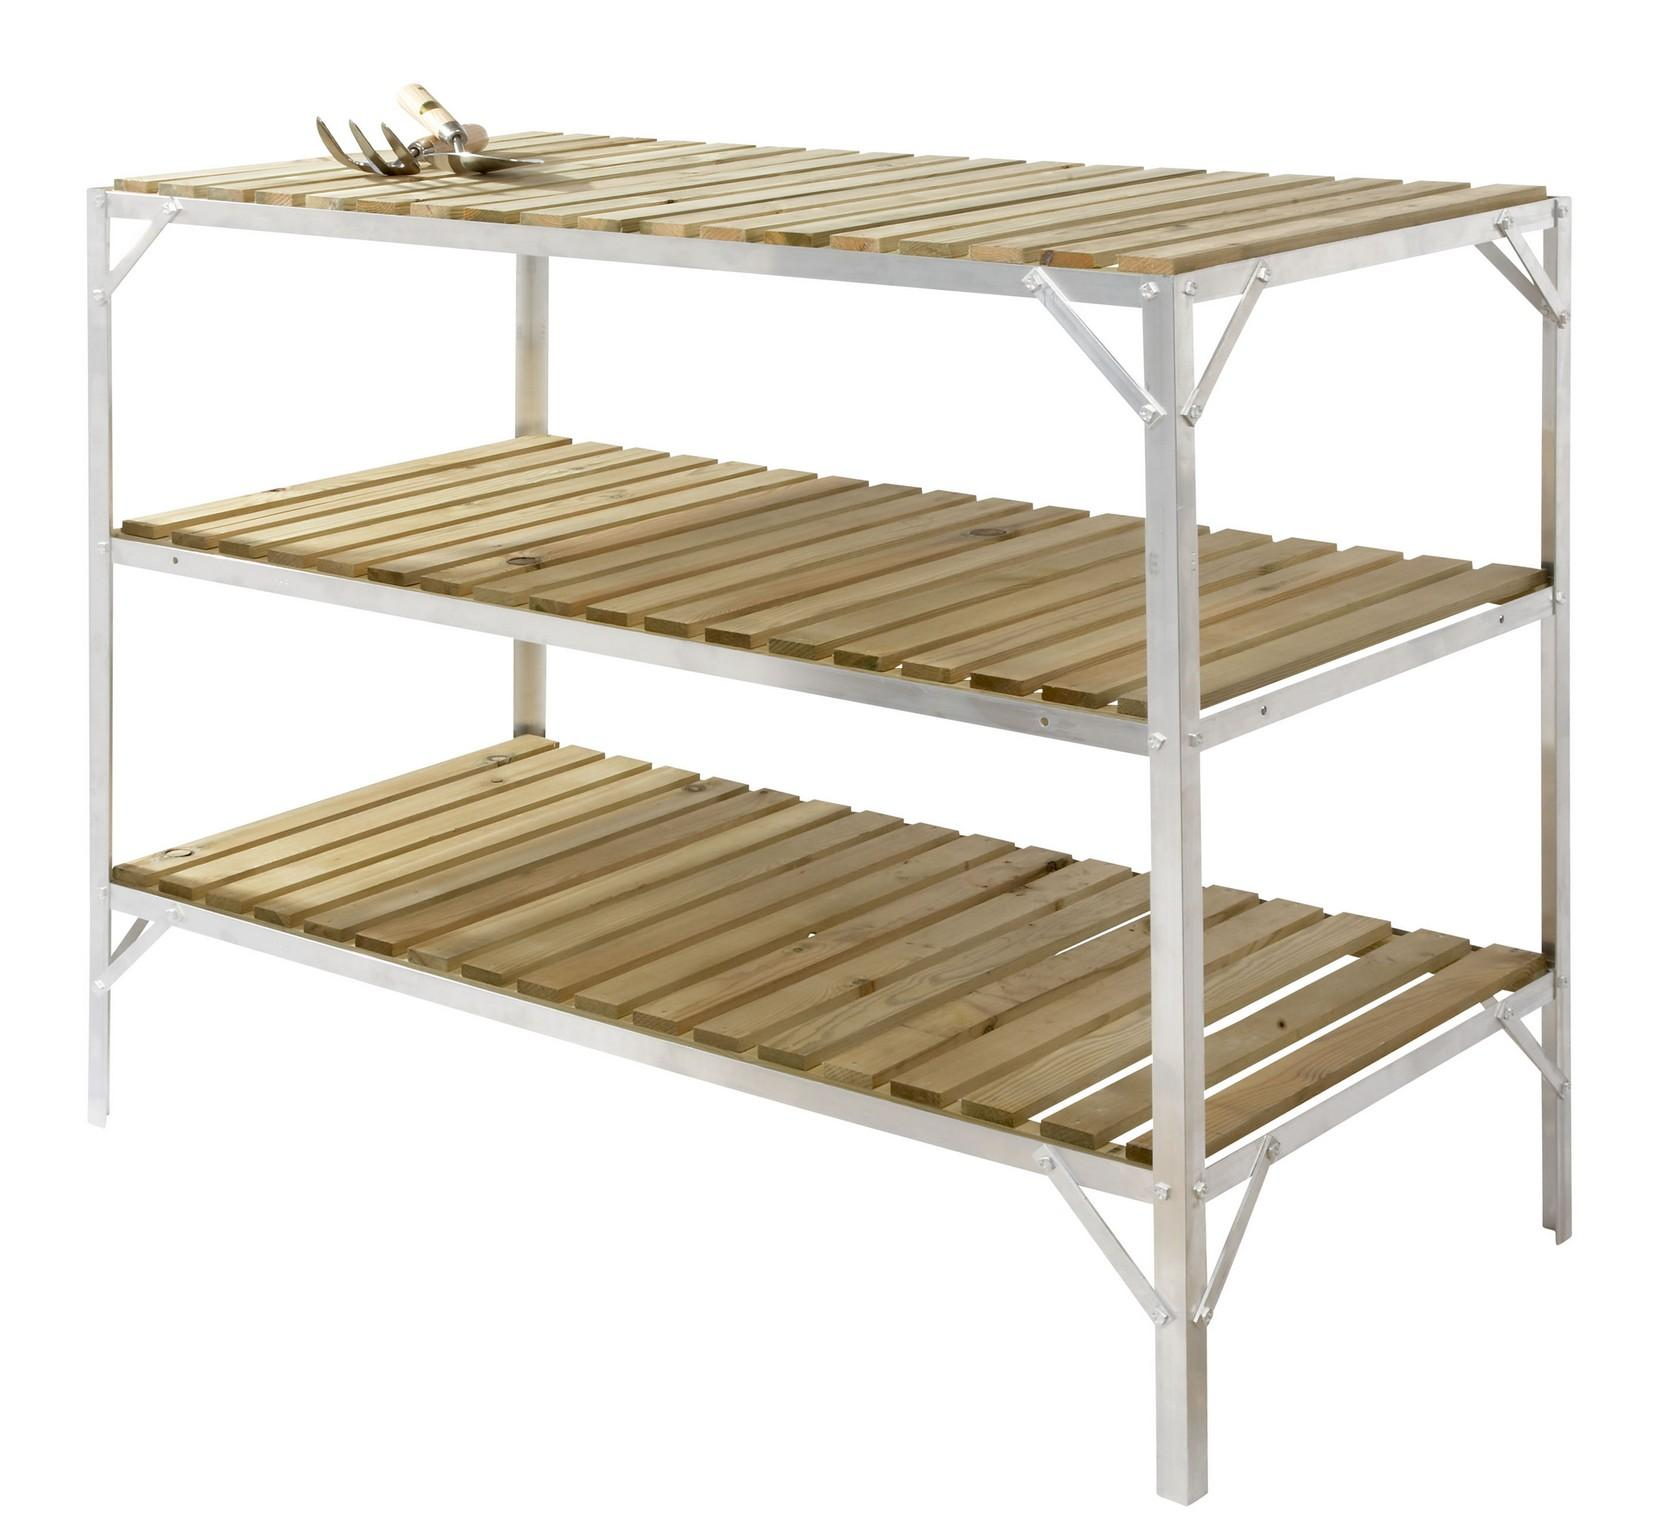 Greenhouse staging bench wooden three tier 2ft wide x - Wooden staging for greenhouse ...